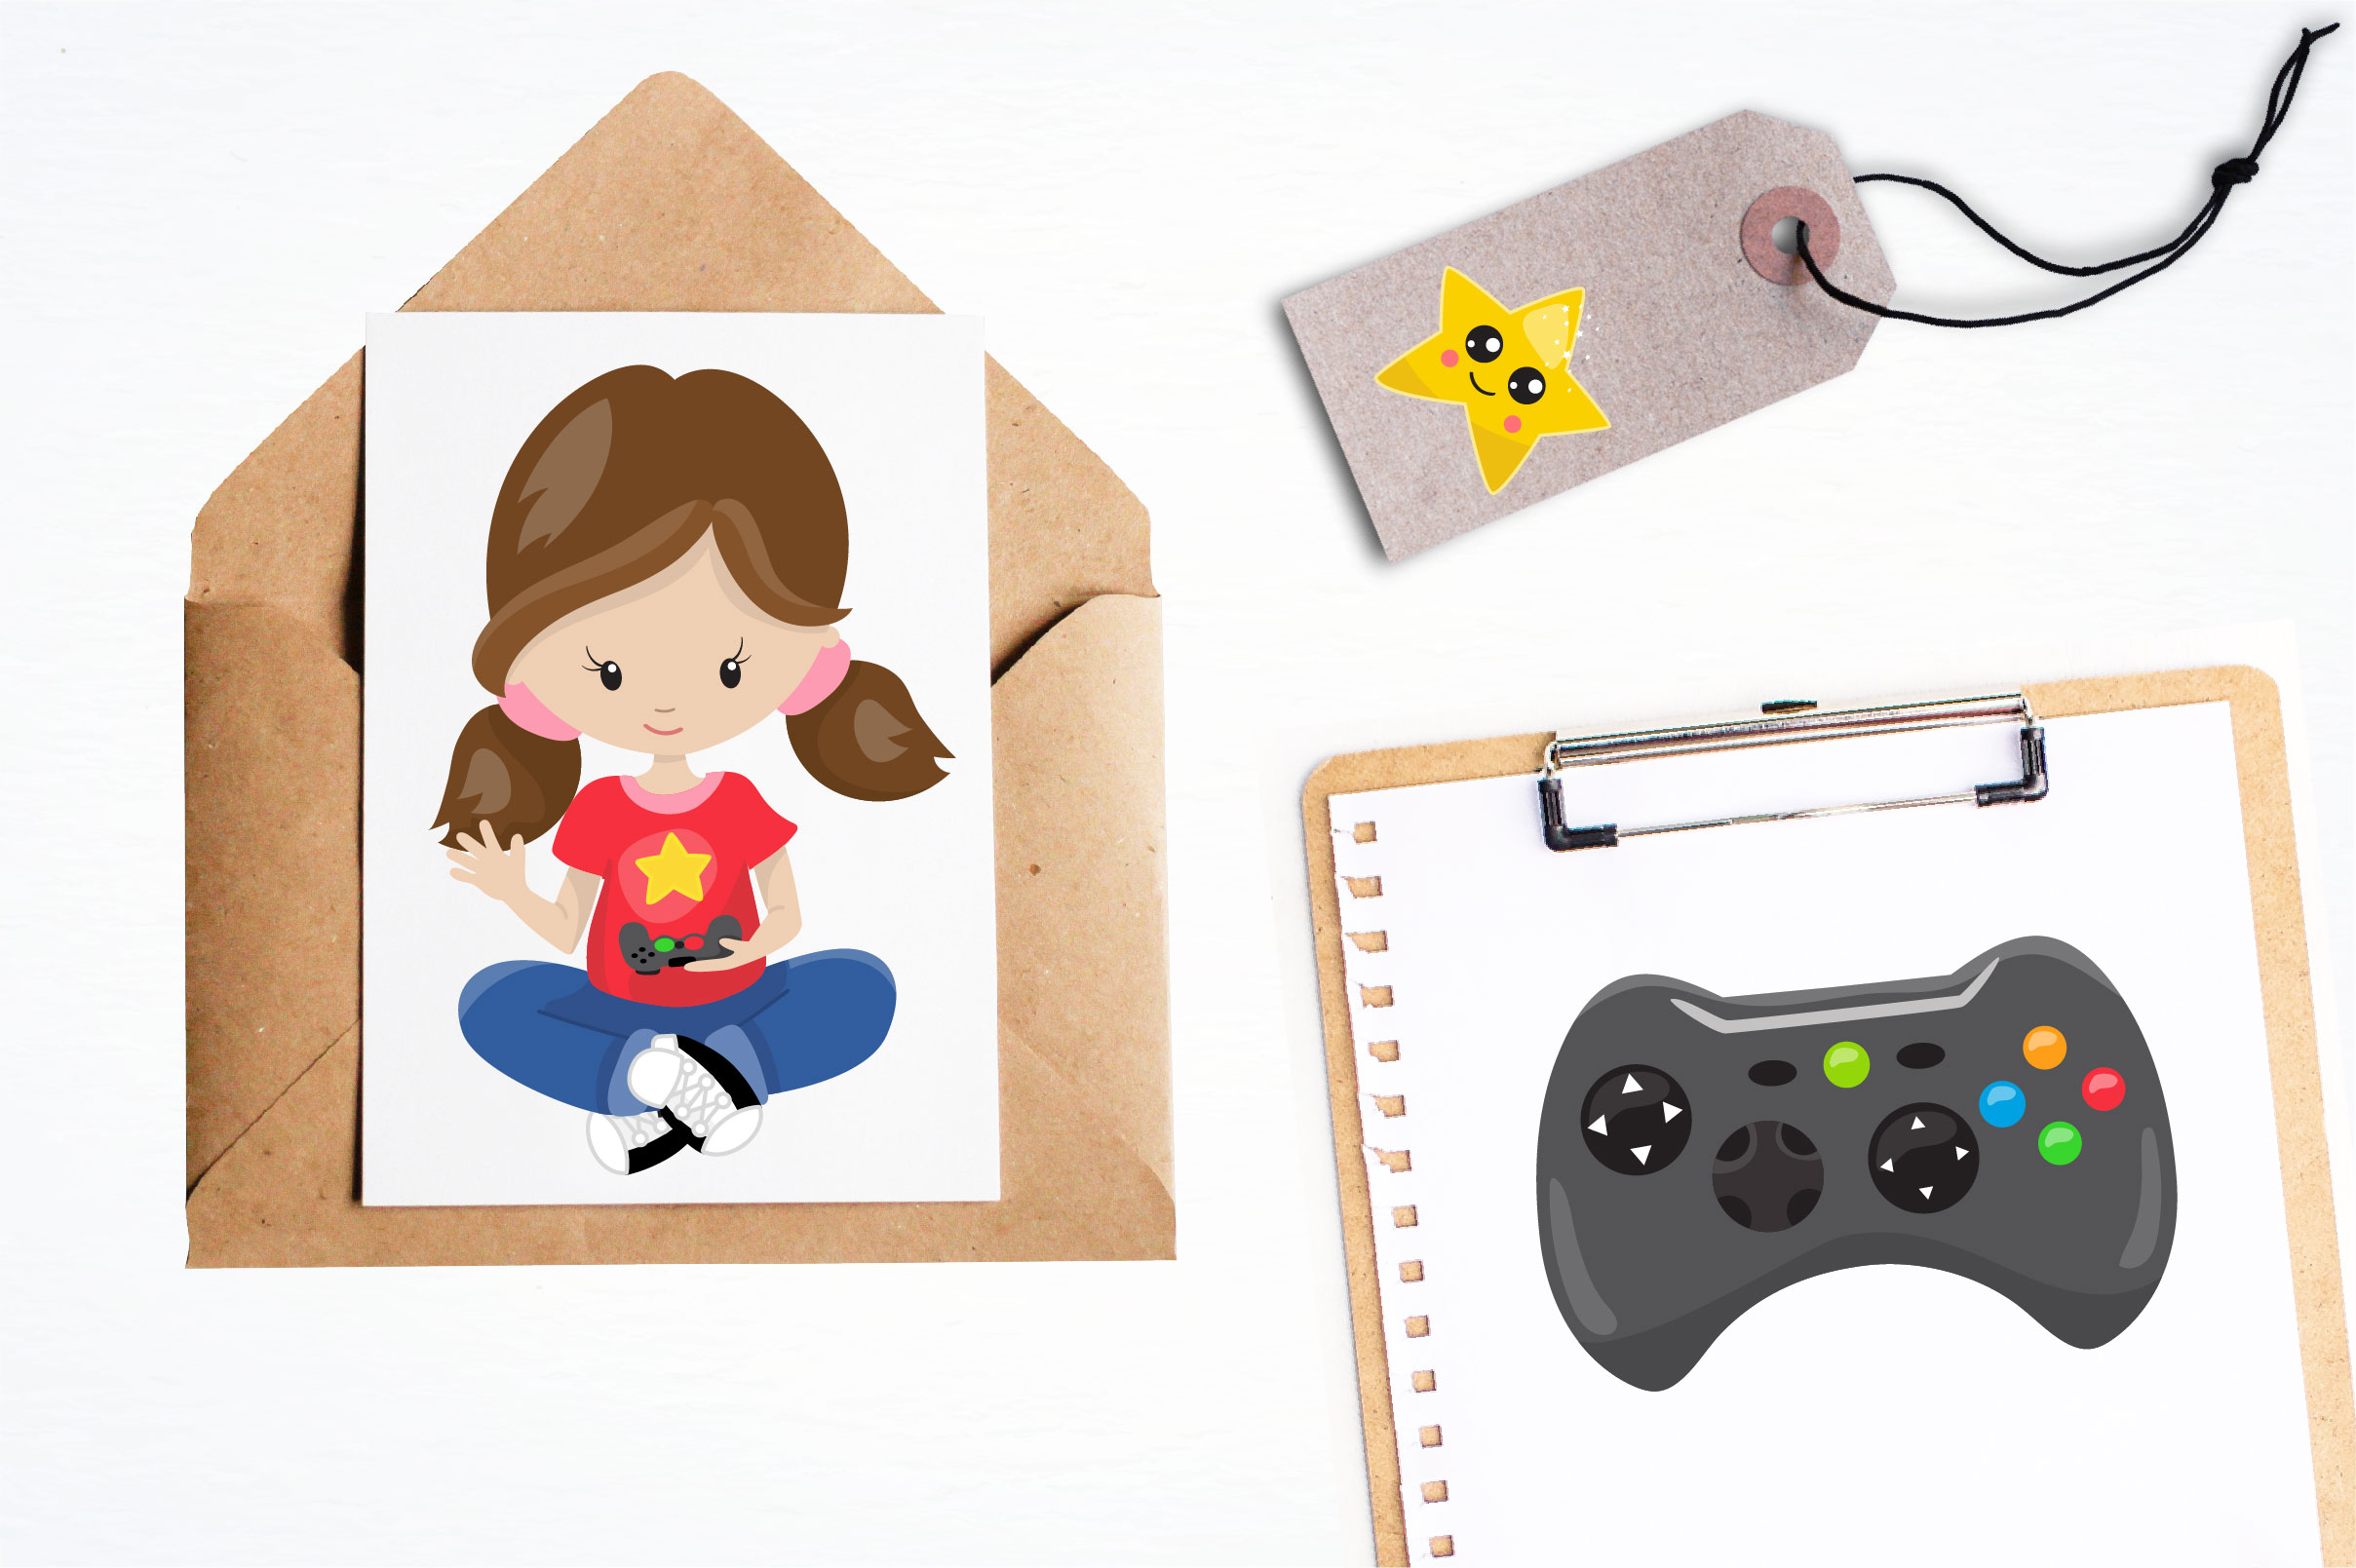 Game kids graphics and illustrations example image 2